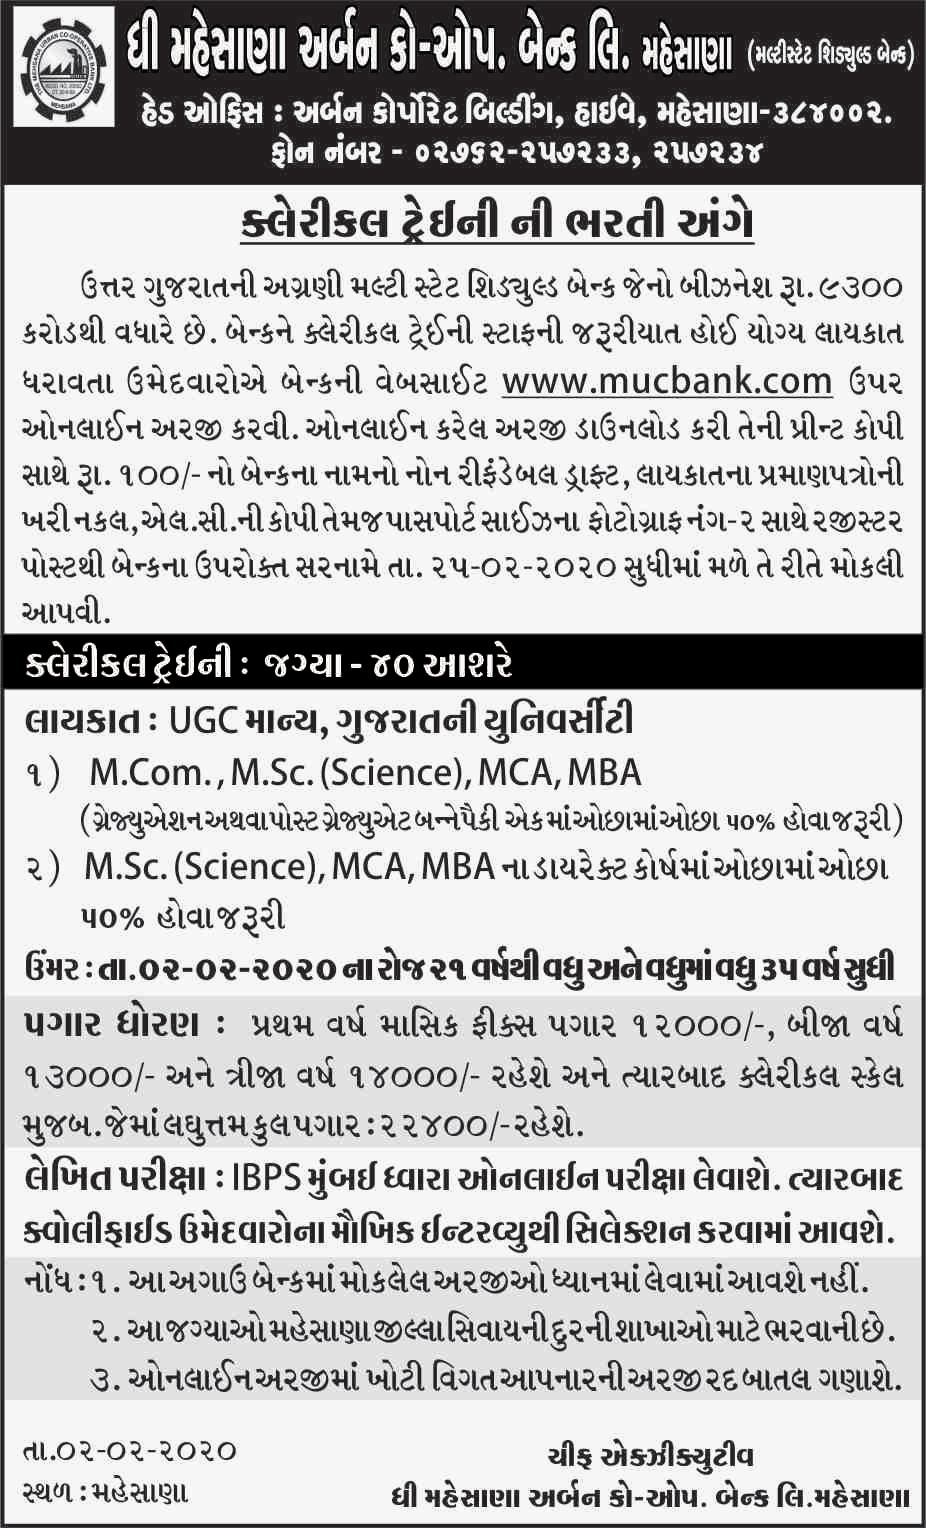 CLERICAL TRAINEE 40 POSTS RECRUITMENT IN MEHSANA URBAN CO. BANK LTD